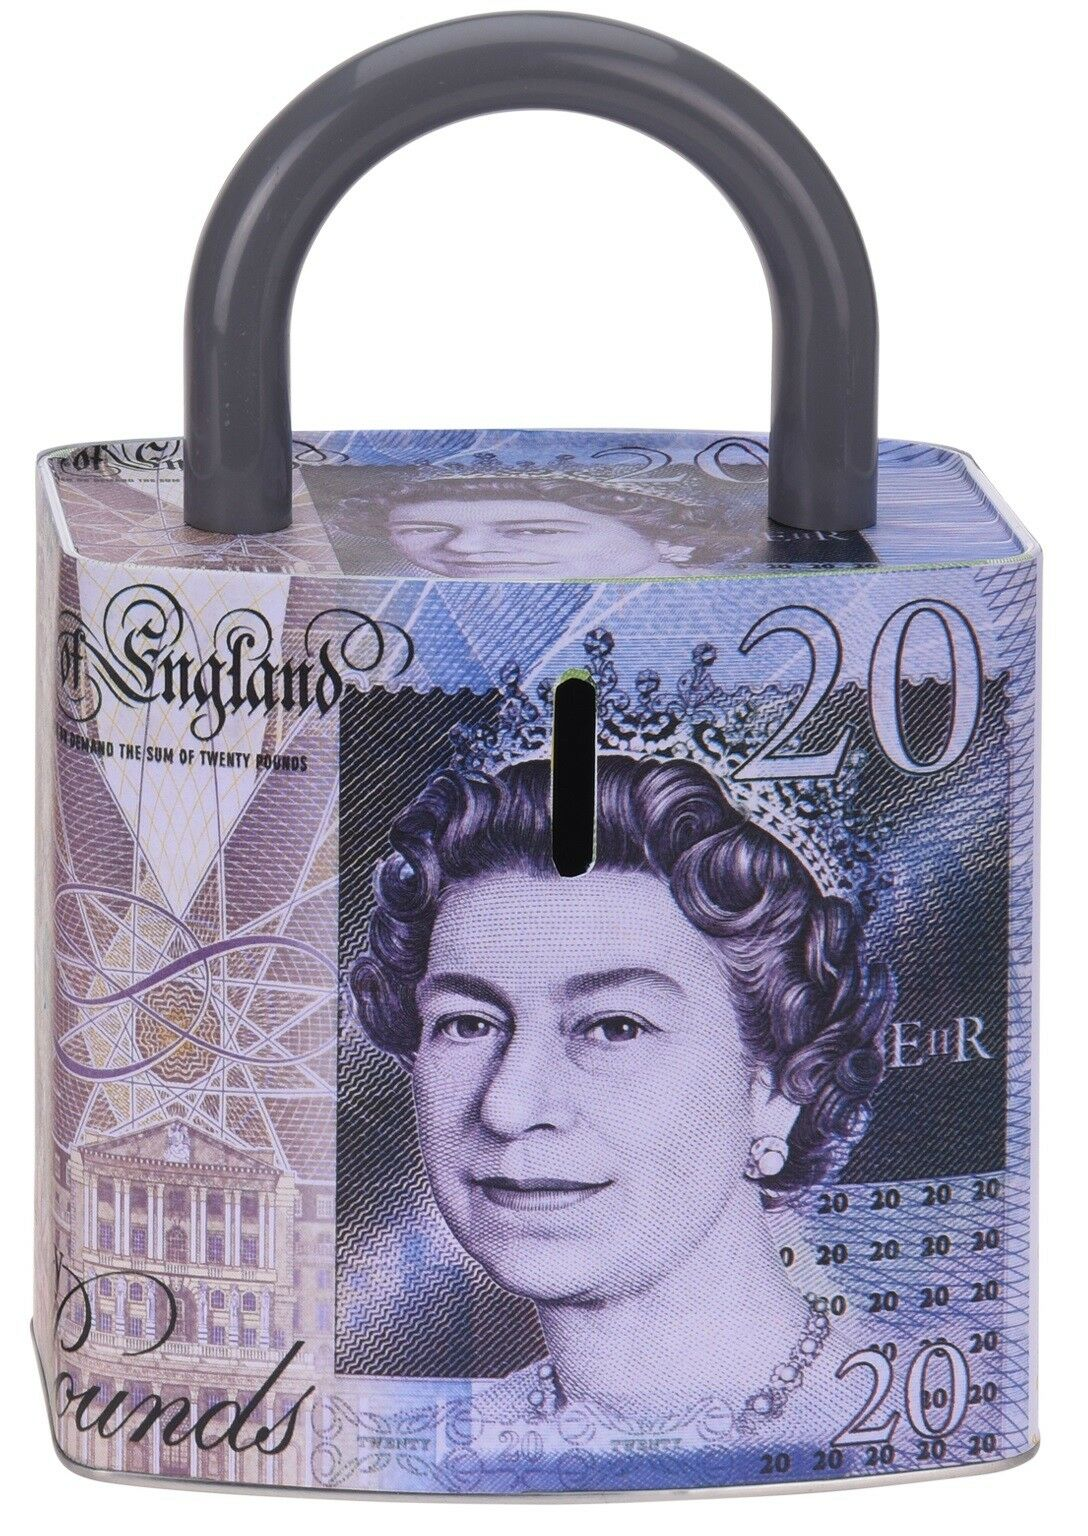 Large Unique Metal Money Box In Shape of a Lock £20 Note & £50 Note